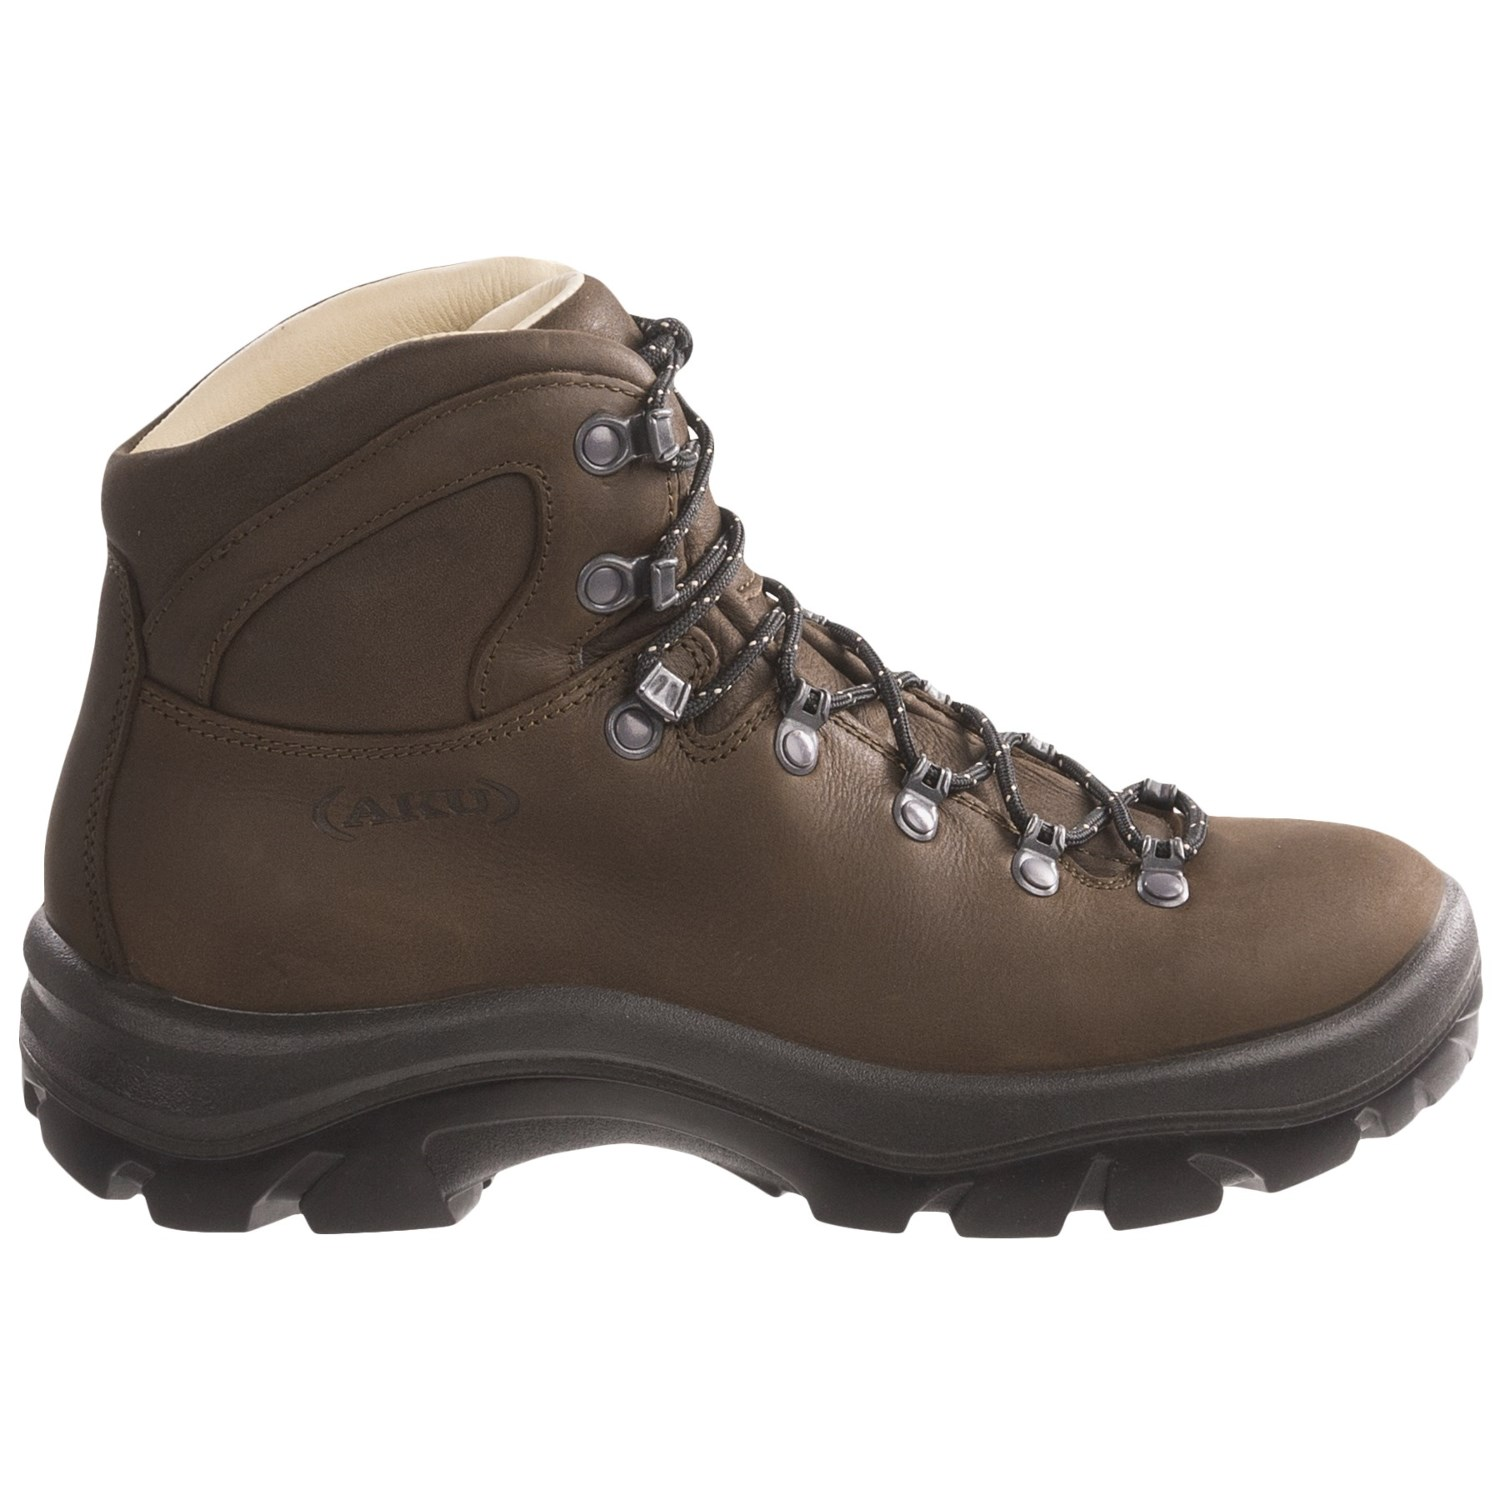 Aku Tribute Hiking Boots For Women 7068p Save 31